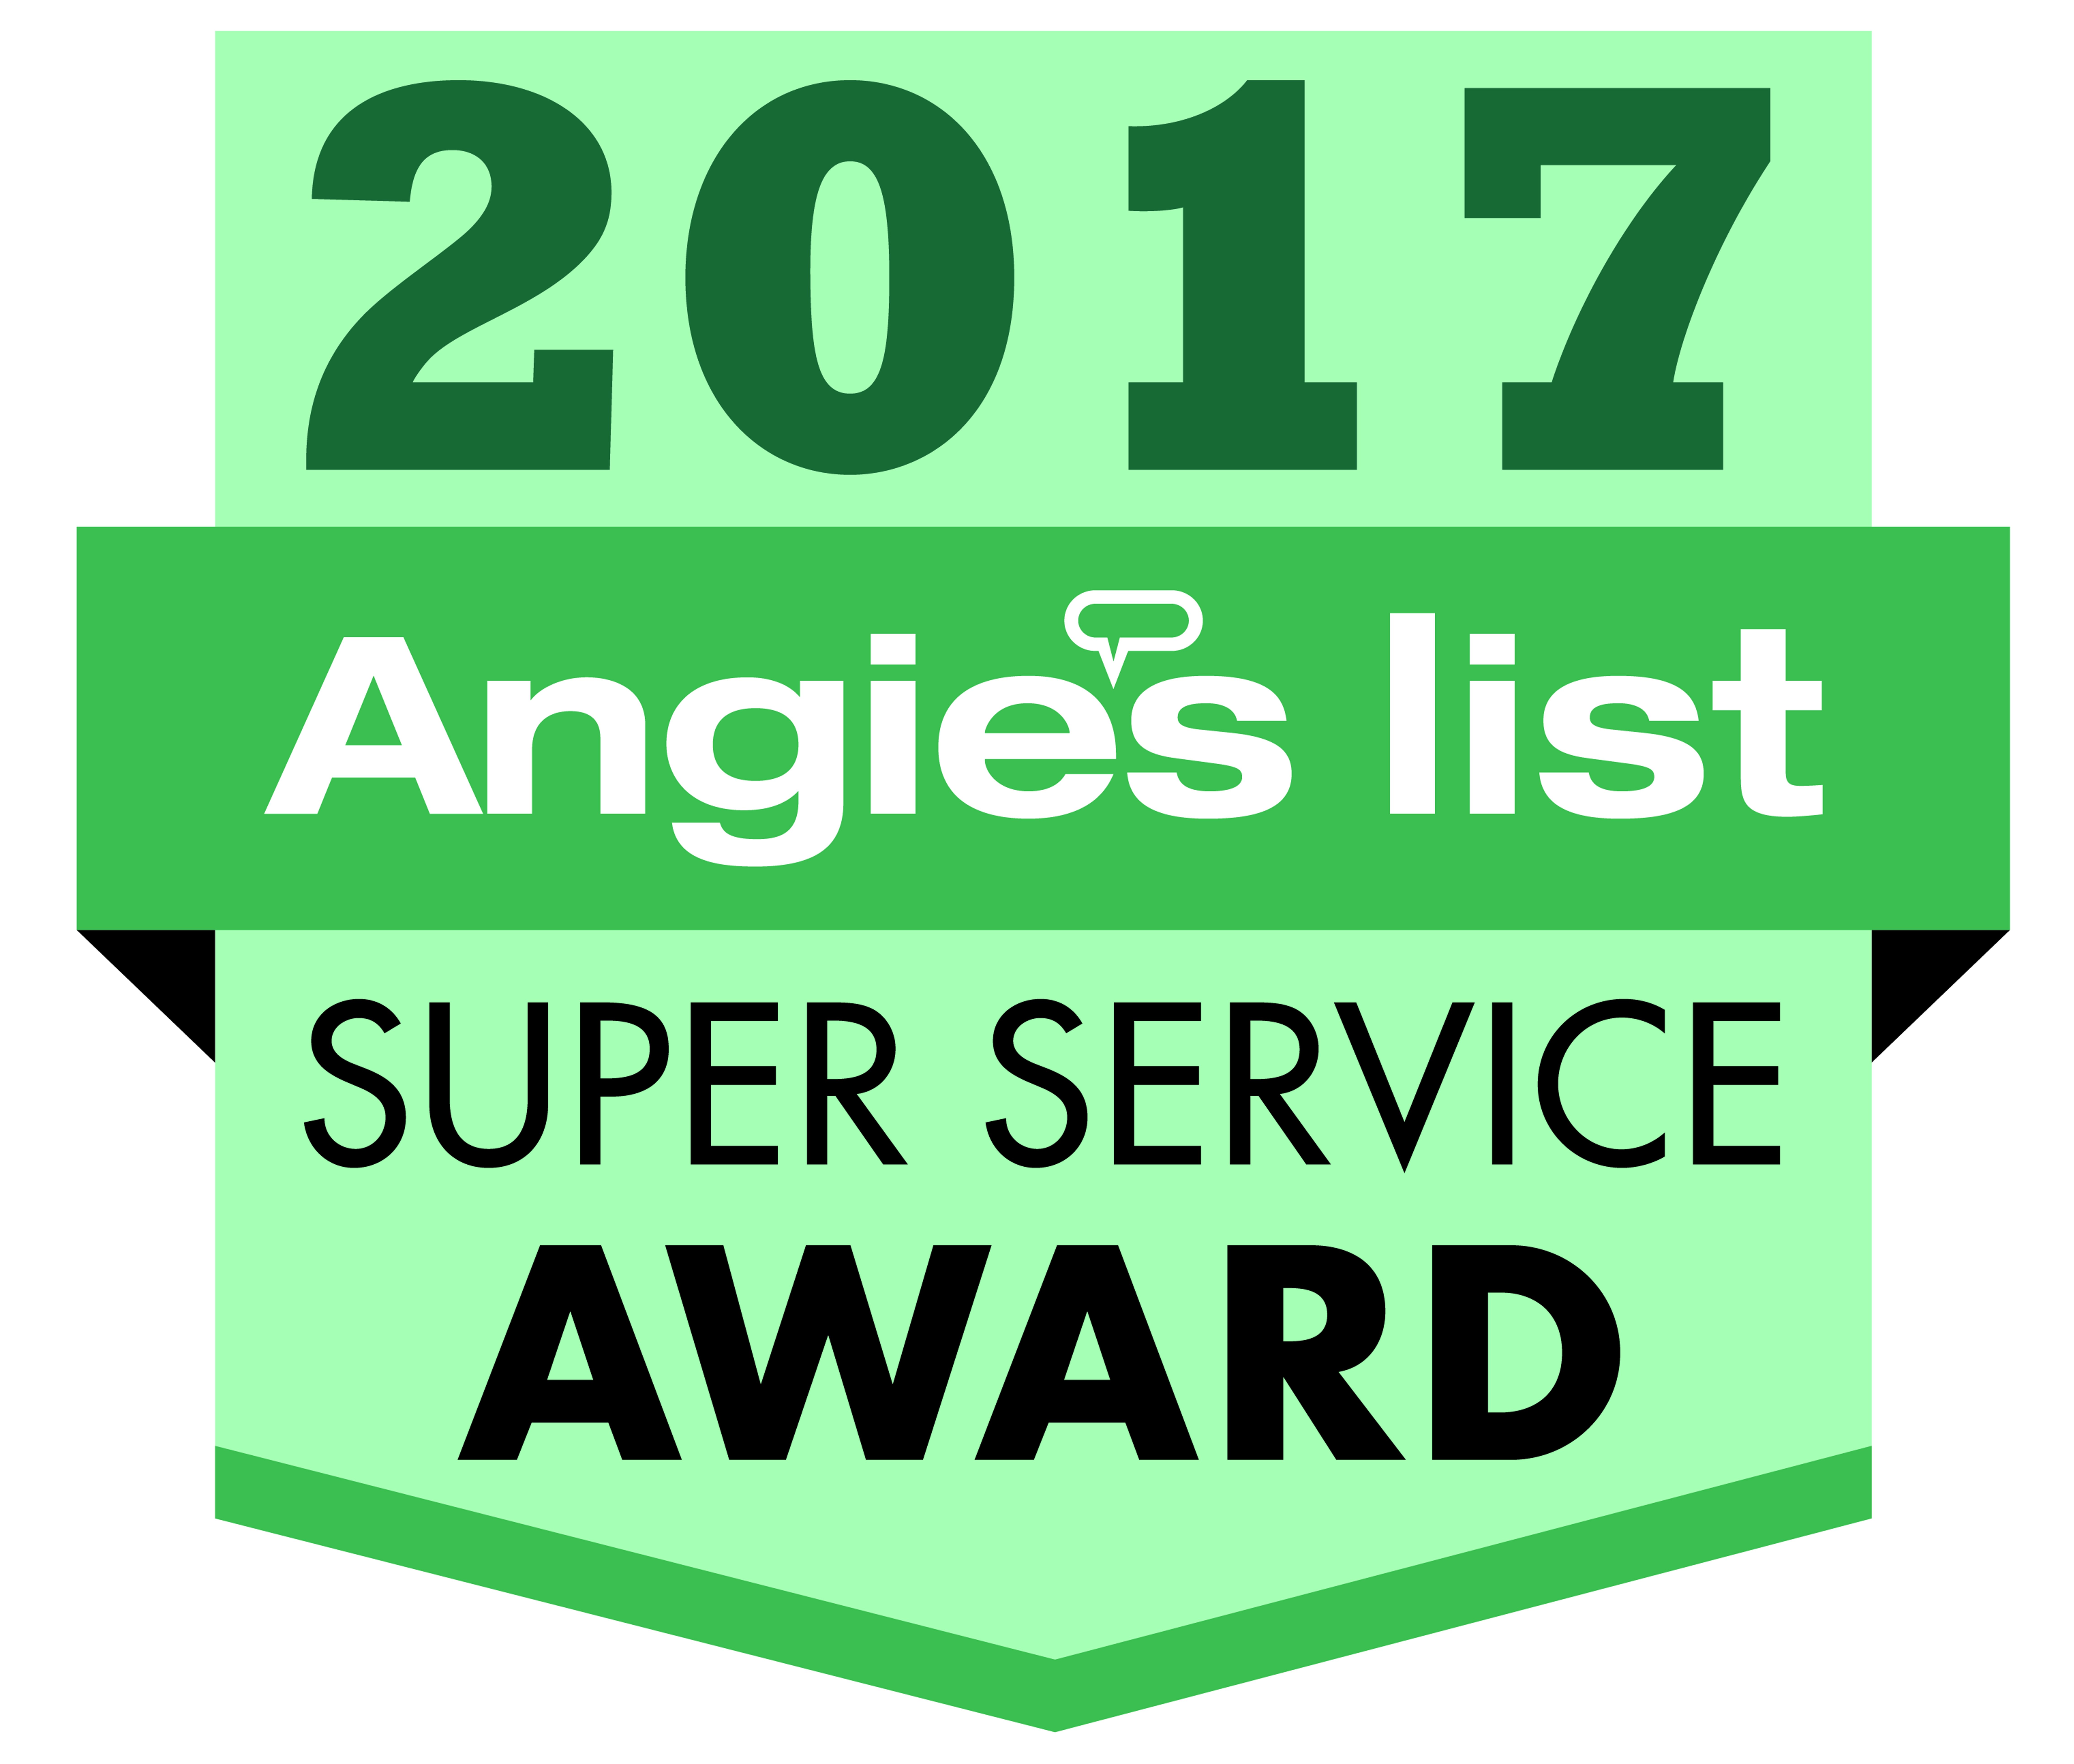 Angie's List Super Service Award Winner since 2012